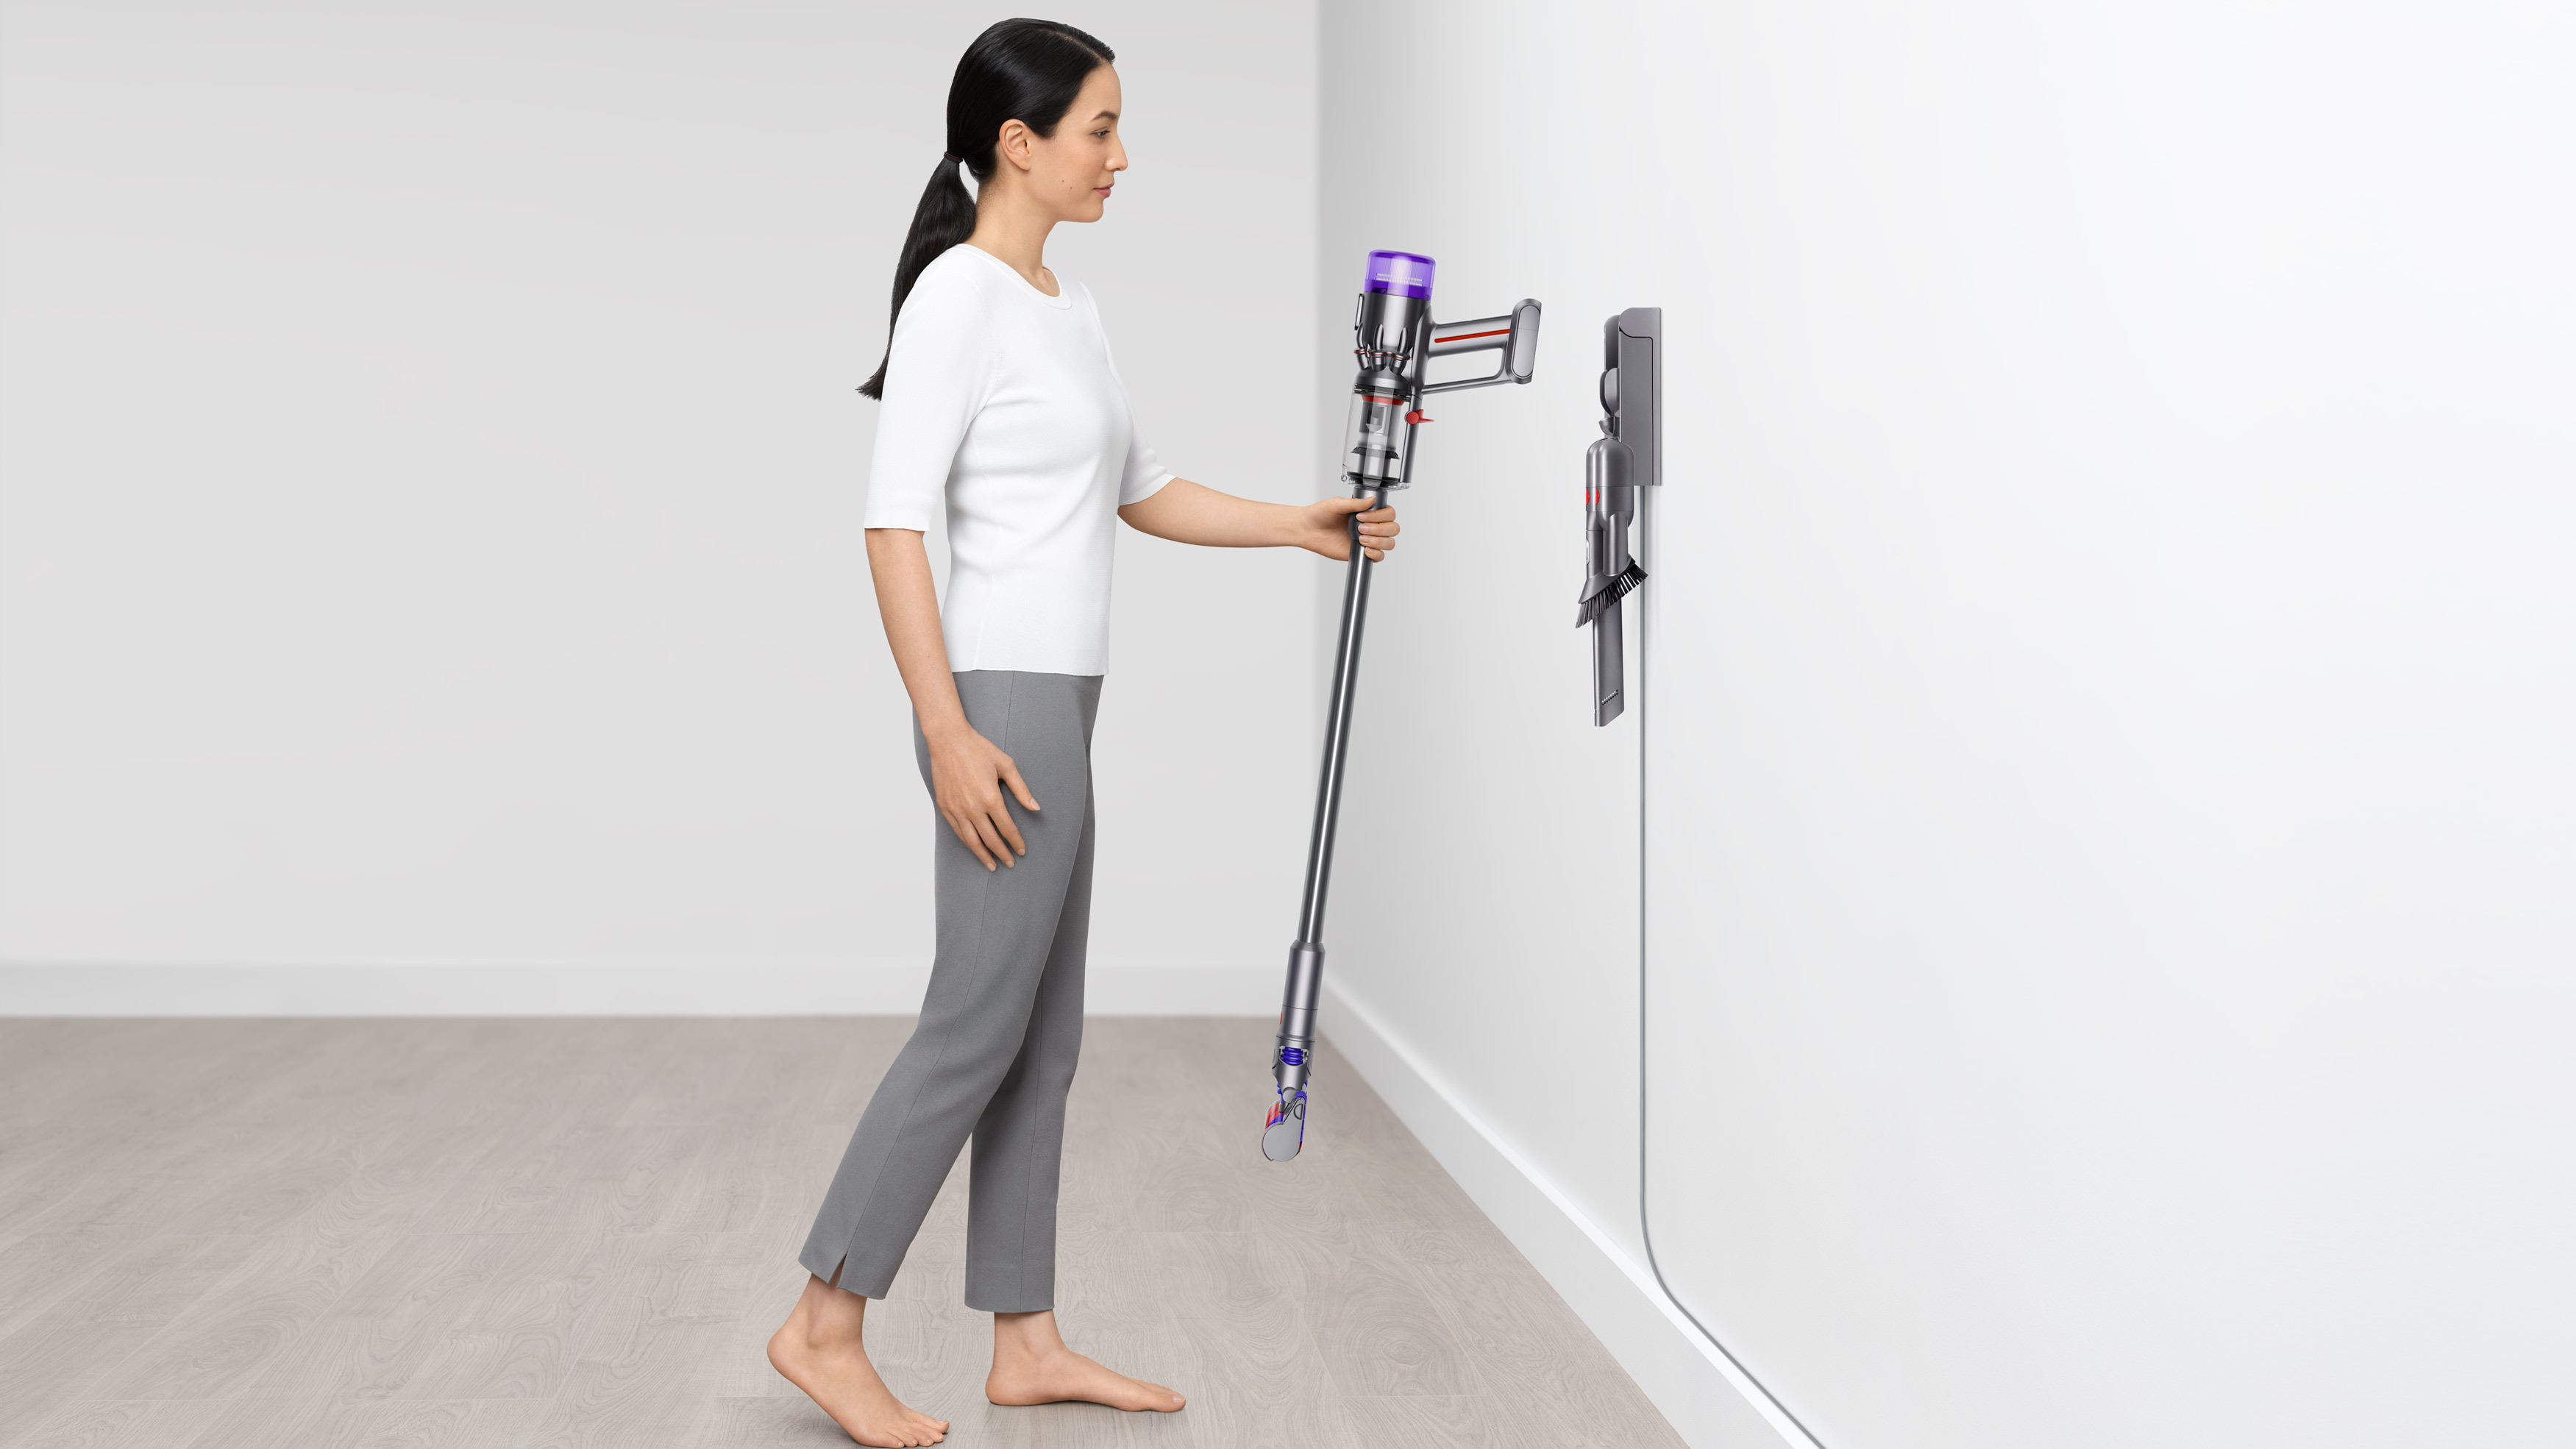 Dyson Micro 1.5kg being hung on the wall charger by a woman